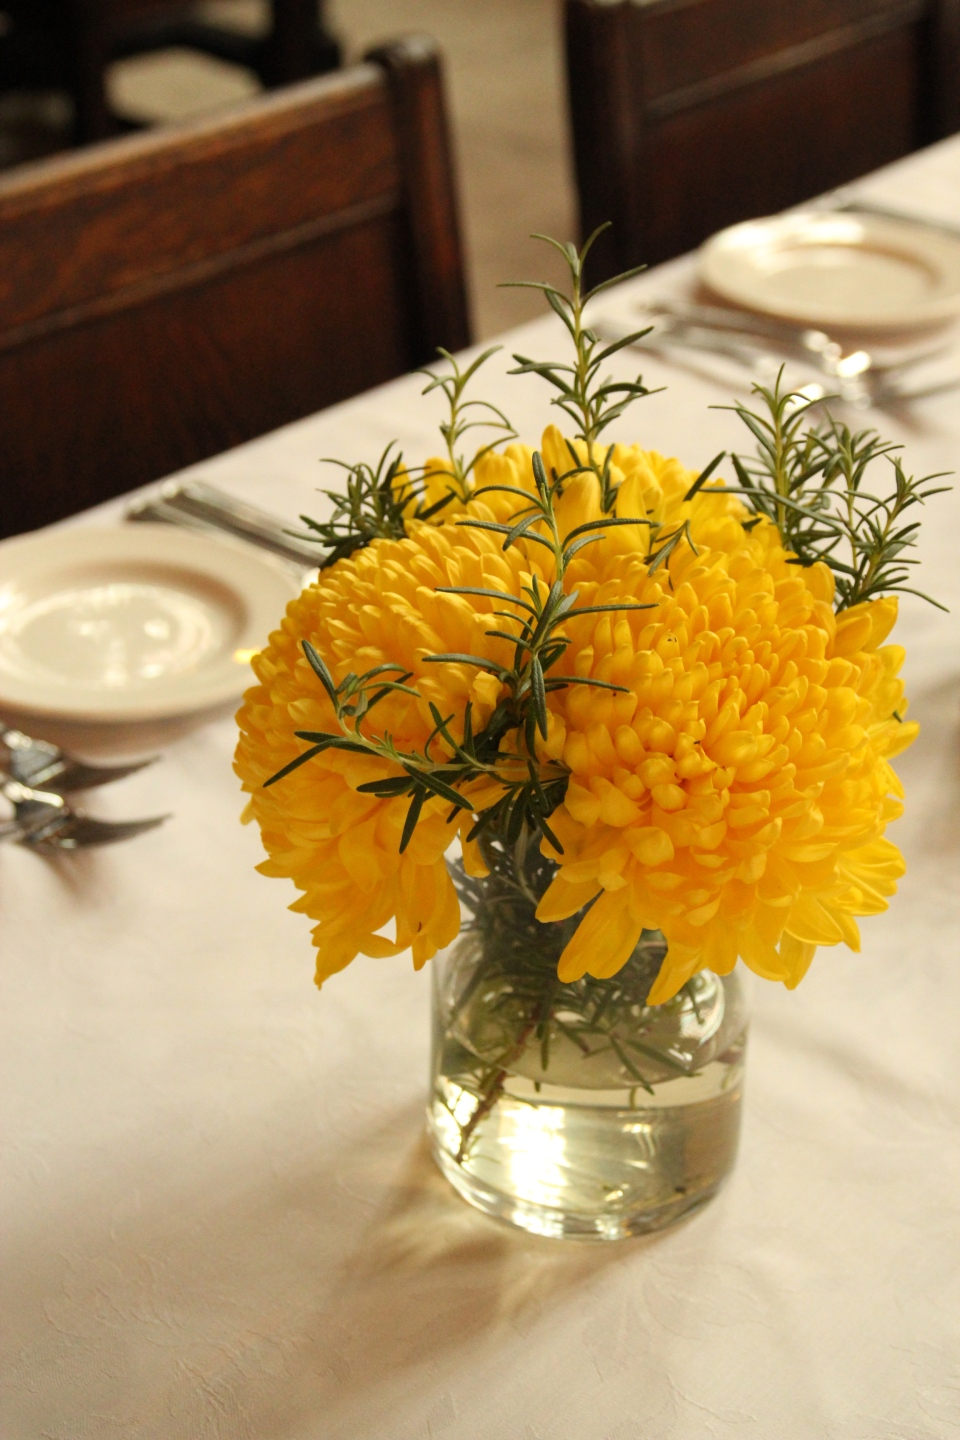 Textured yellow mums and rosemary sprigs